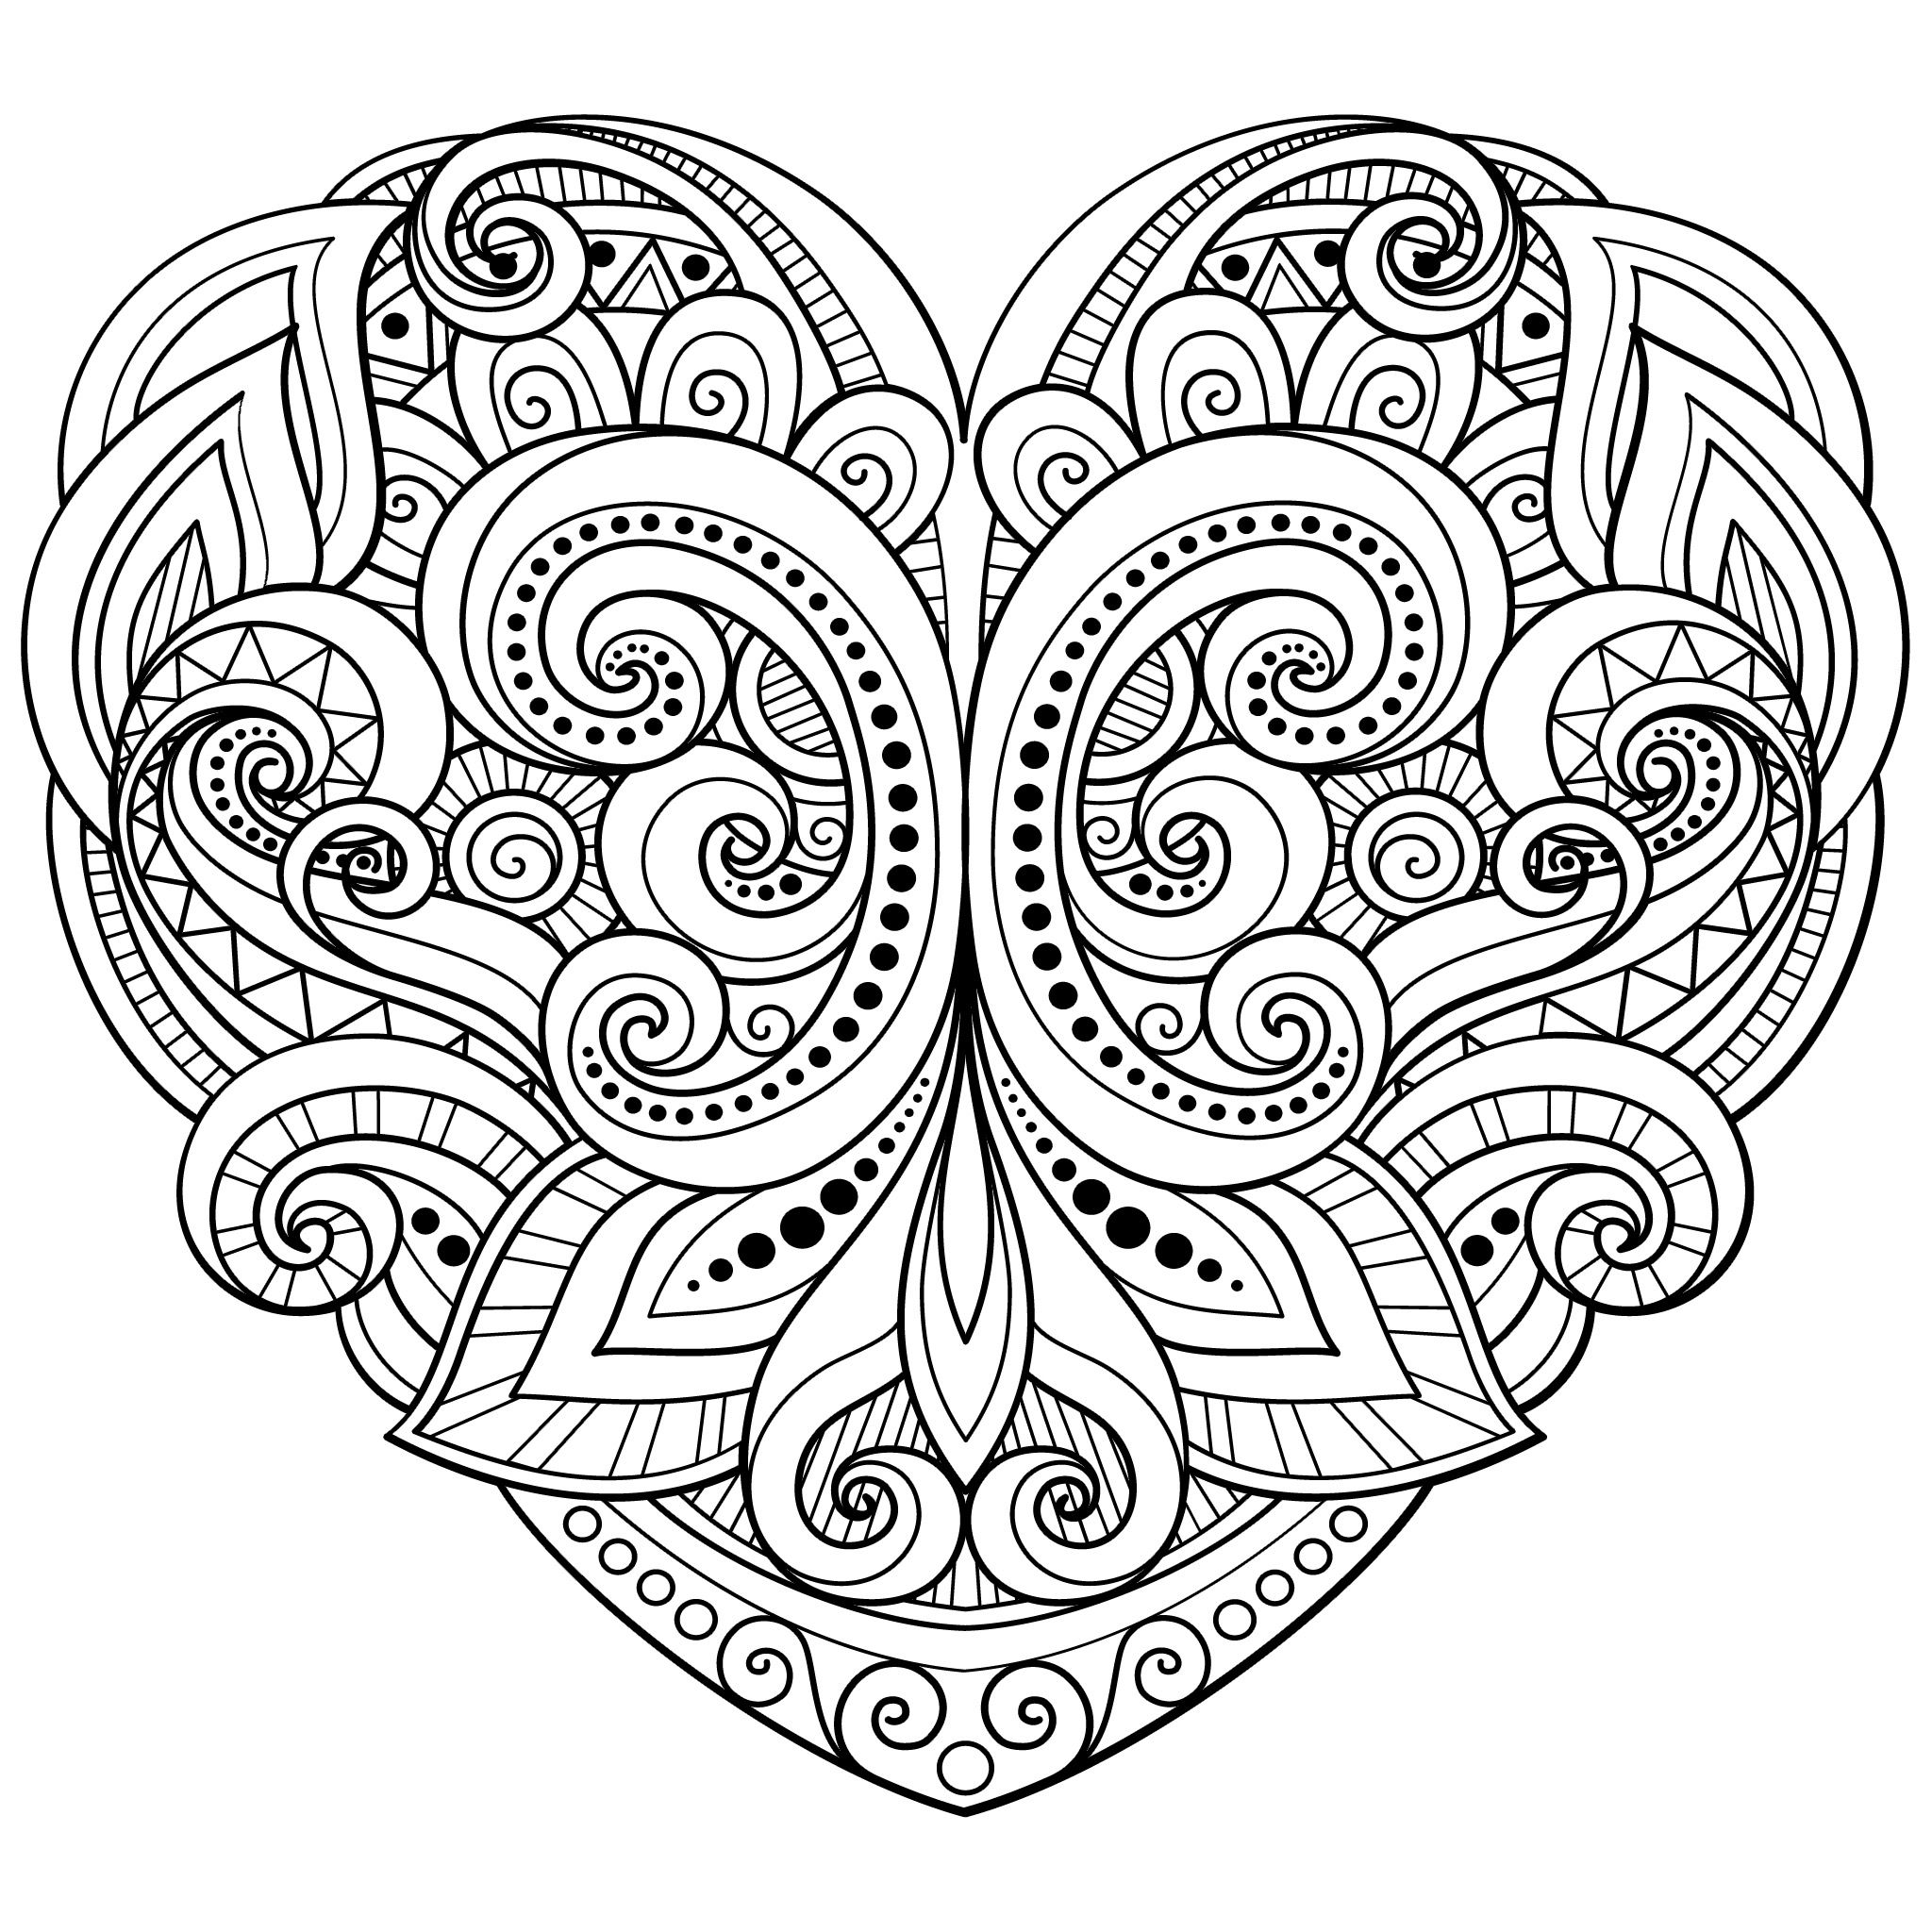 Love heart coloring page | Heart coloring pages, Love ...